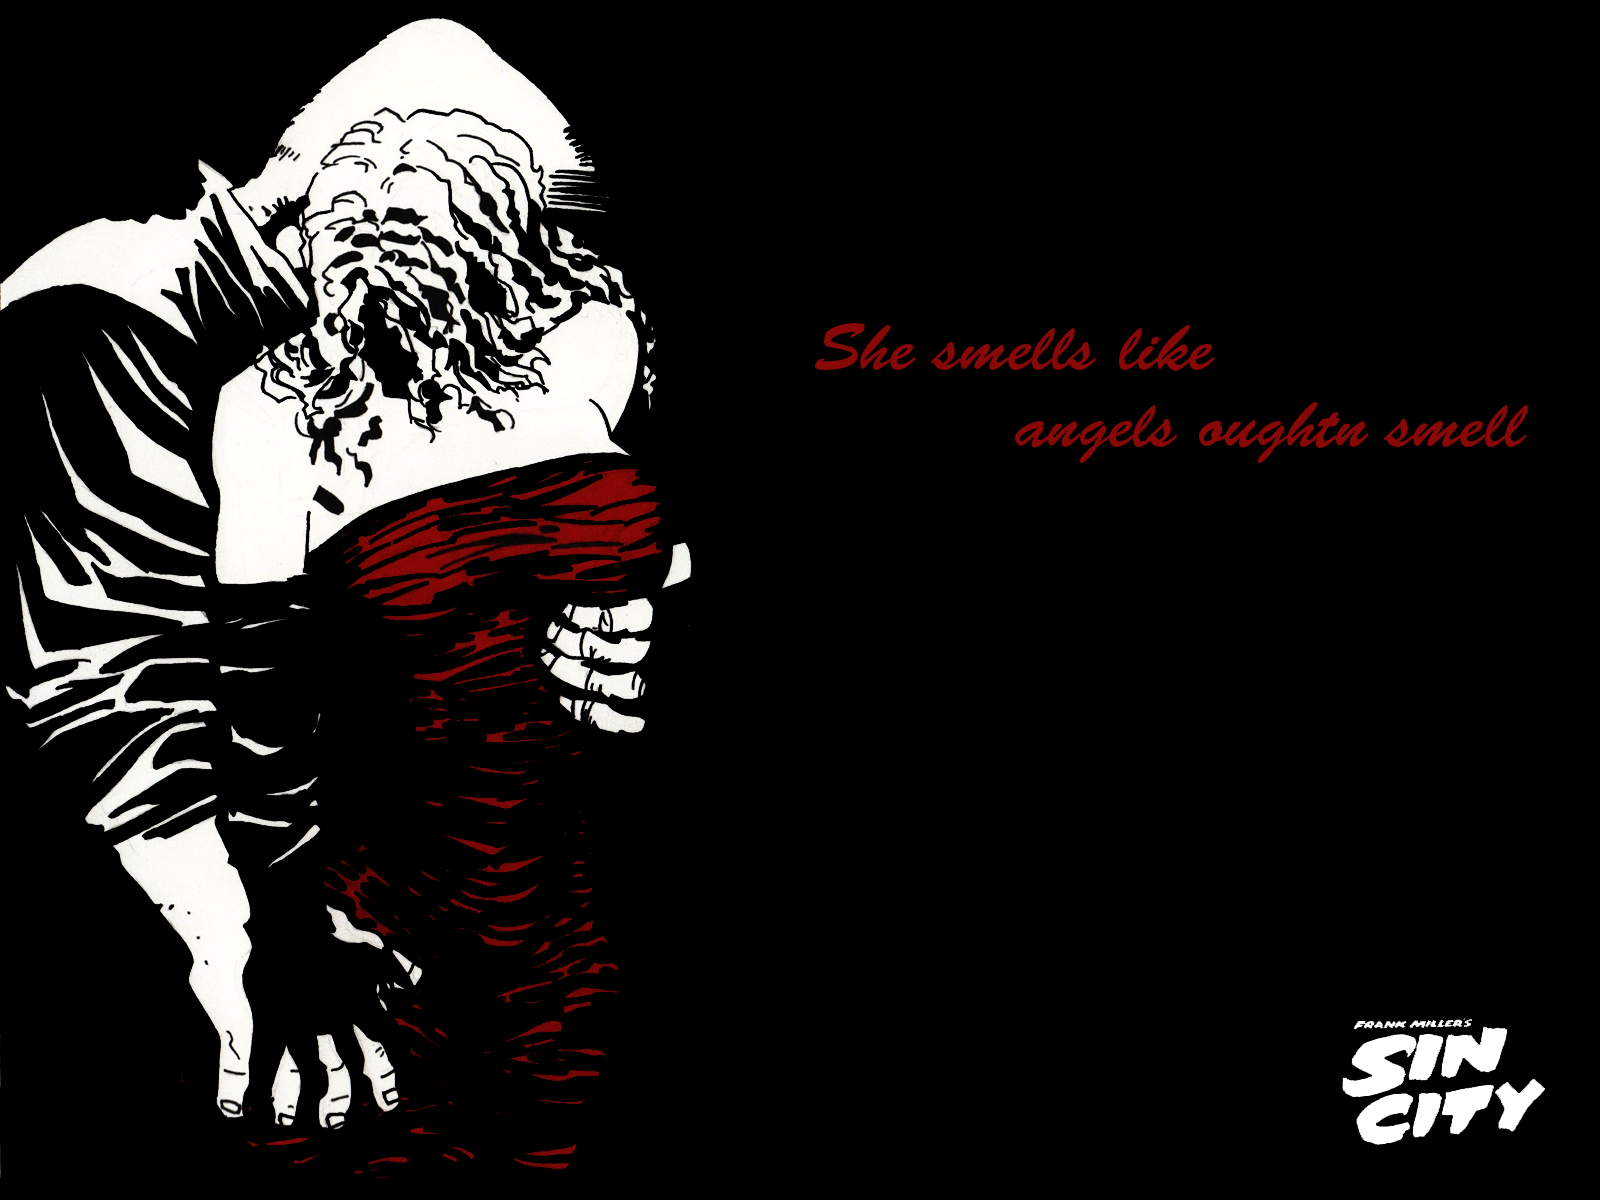 Quotes about Sin city (46 quotes)